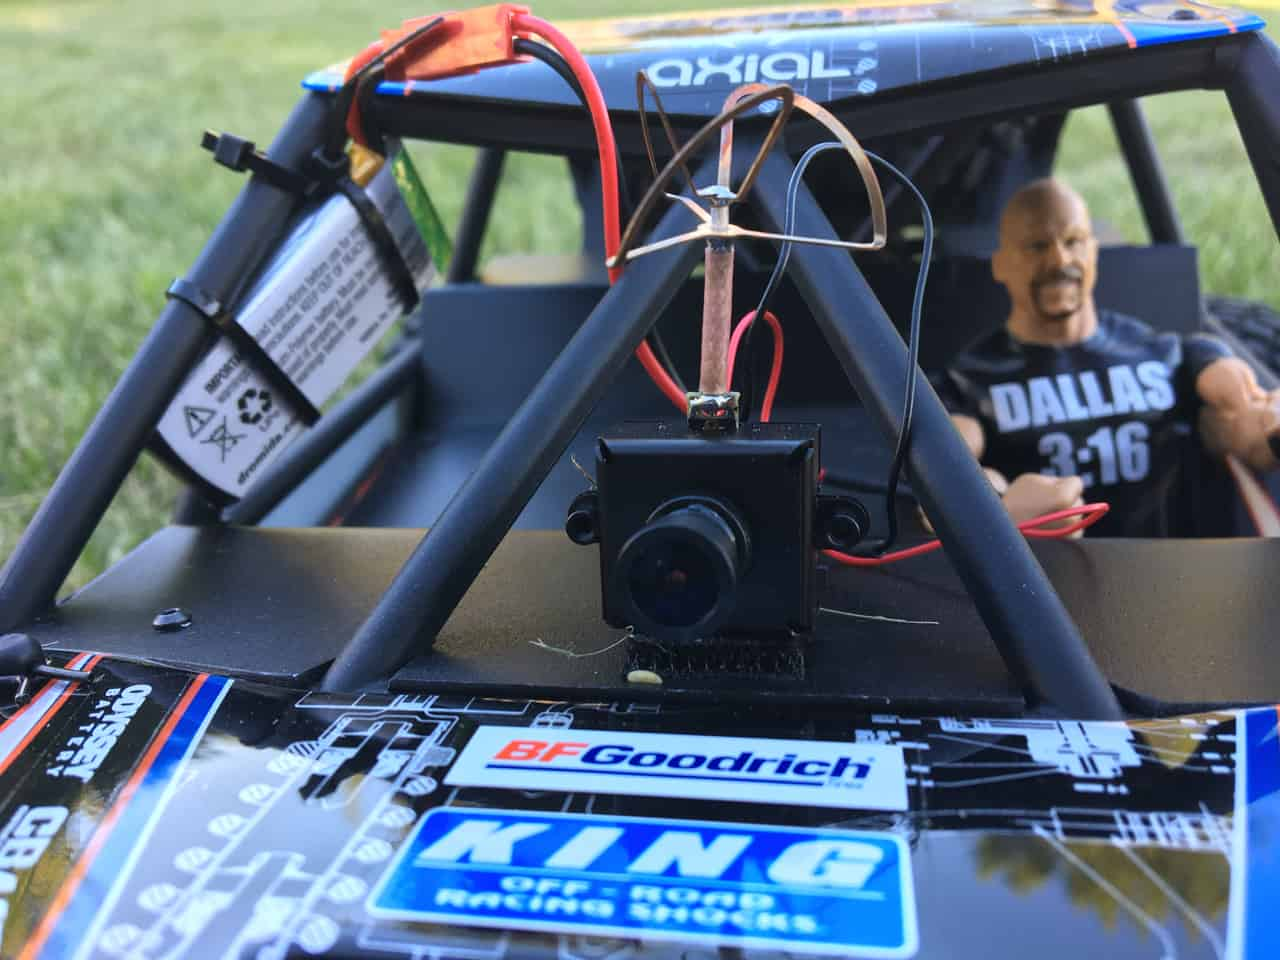 Review: Eachine's EF-01 AIO FPV Camera